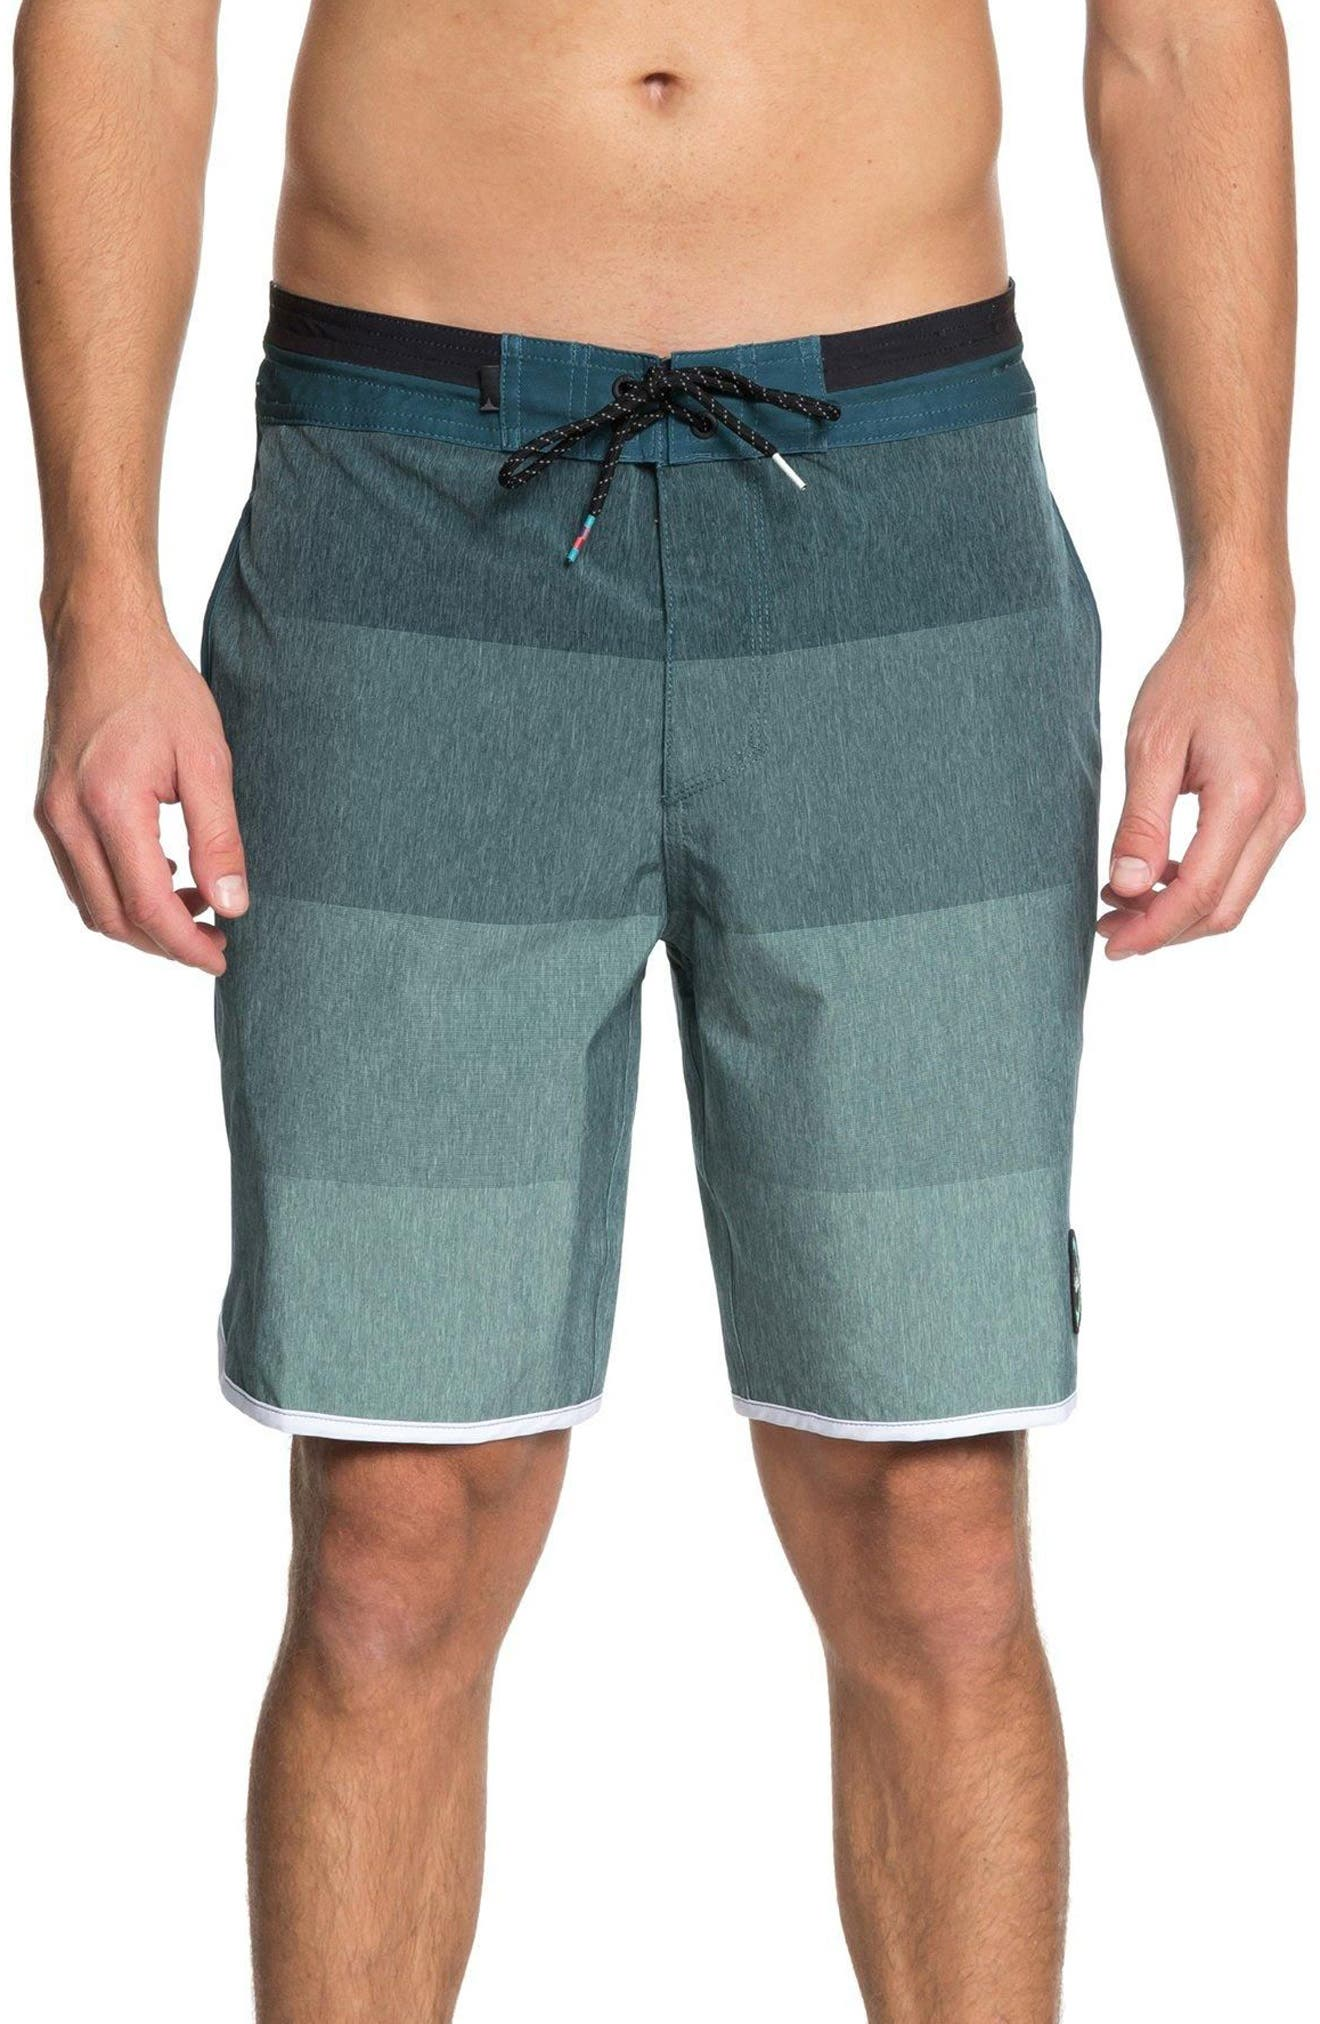 Vista Swim Shorts,                             Main thumbnail 1, color,                             406